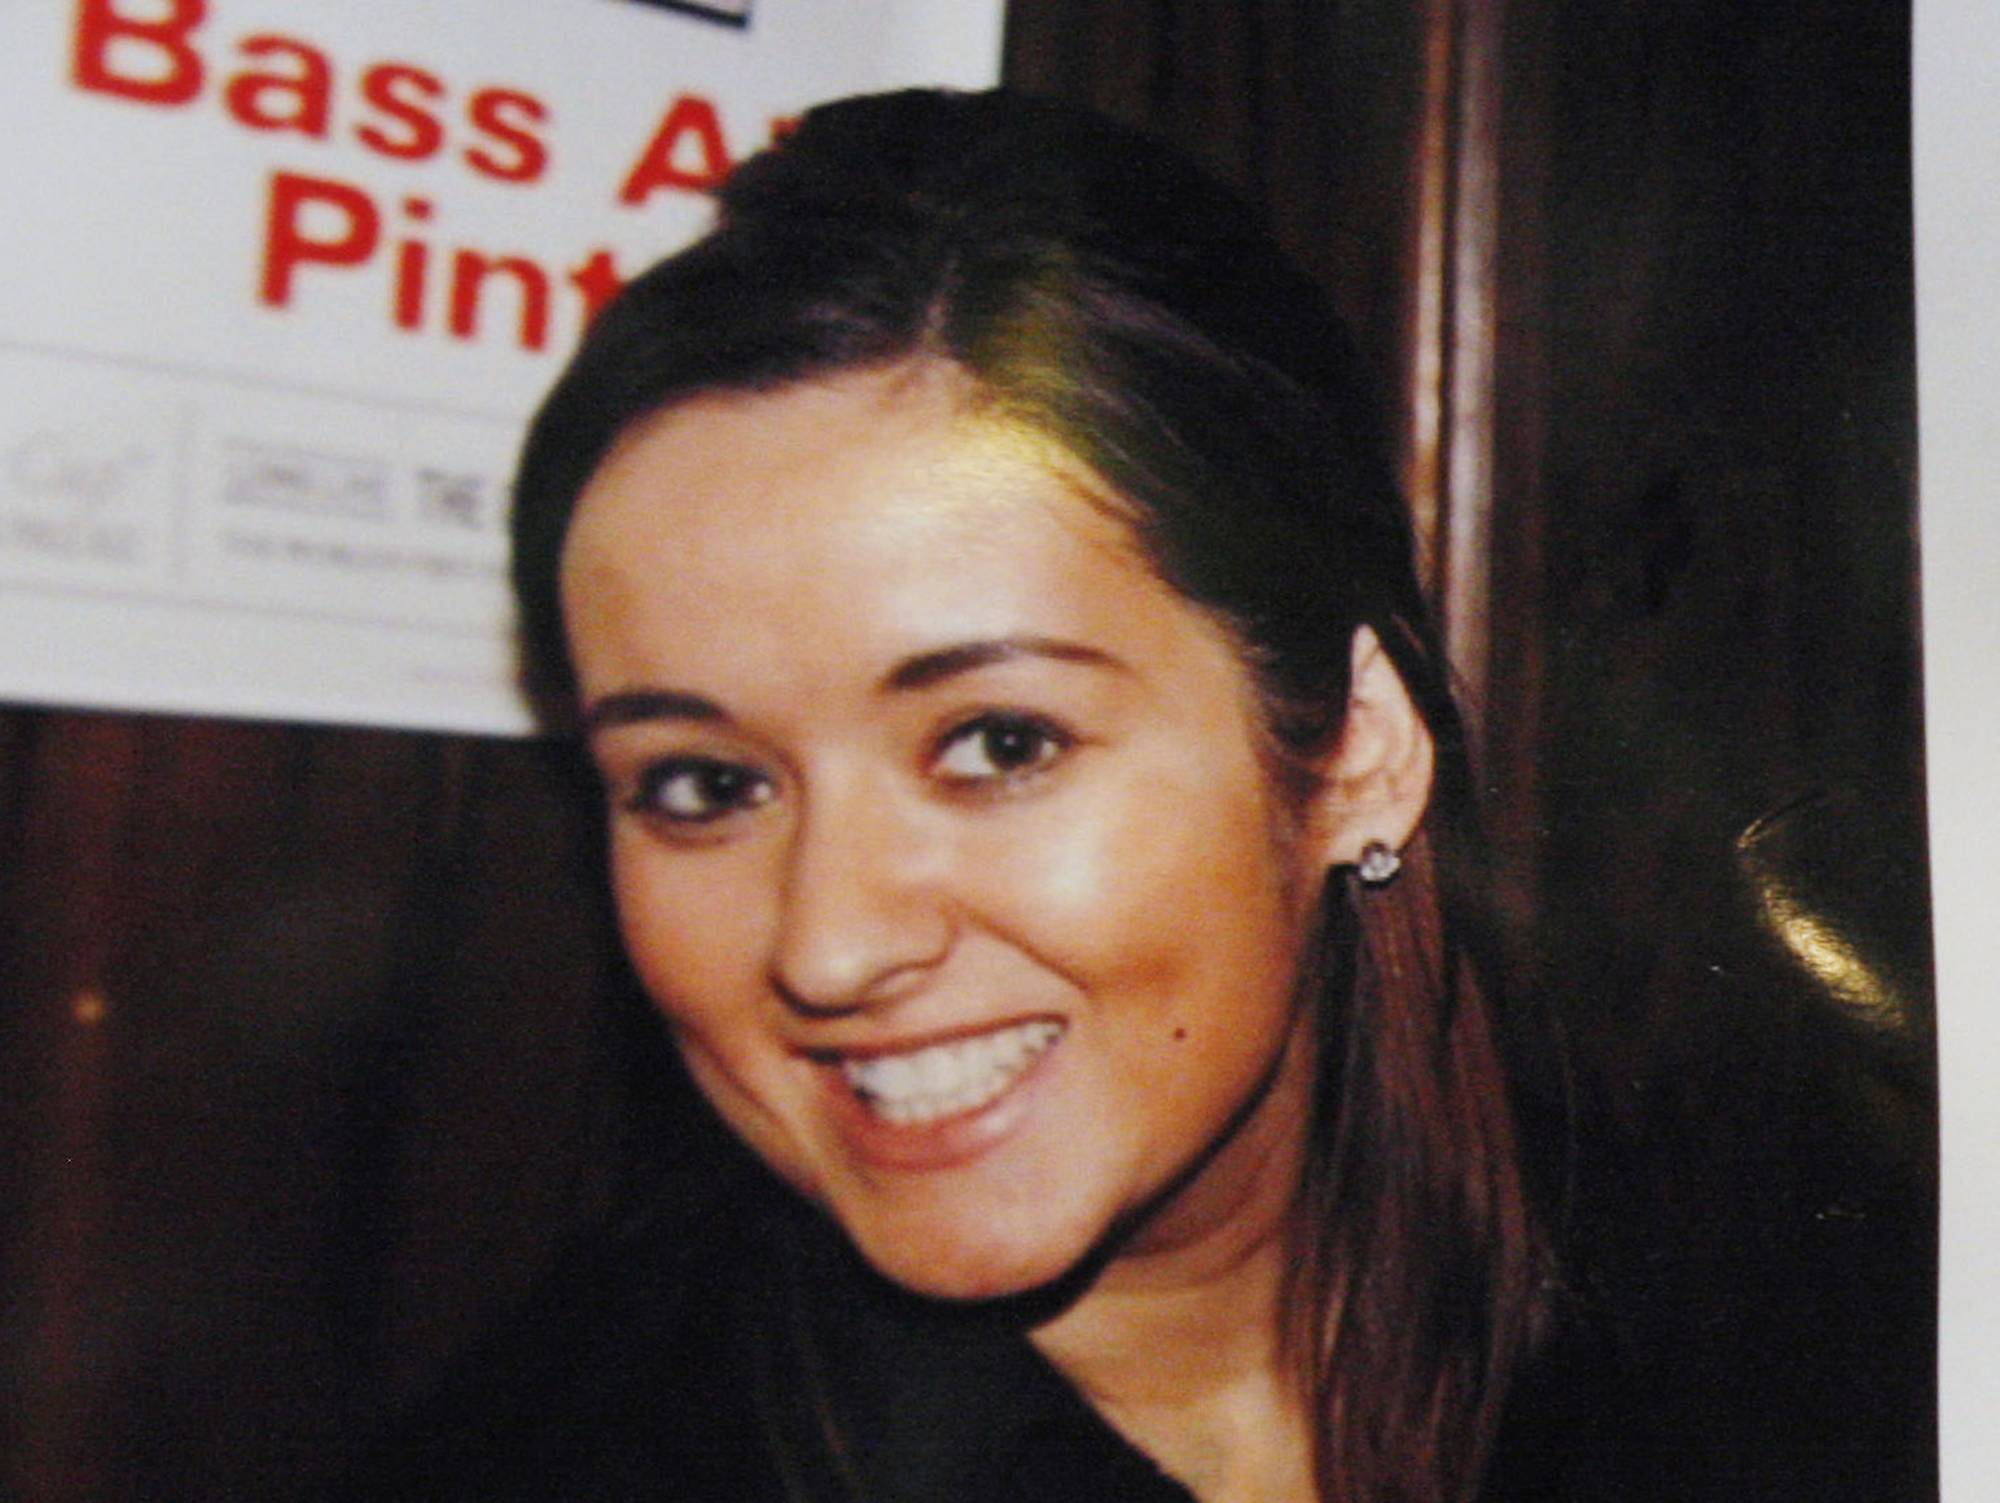 Natasha McShane, an exchange student from Northern Ireland, suffered severe brain damage in a 2010 bat attack in Chicago.